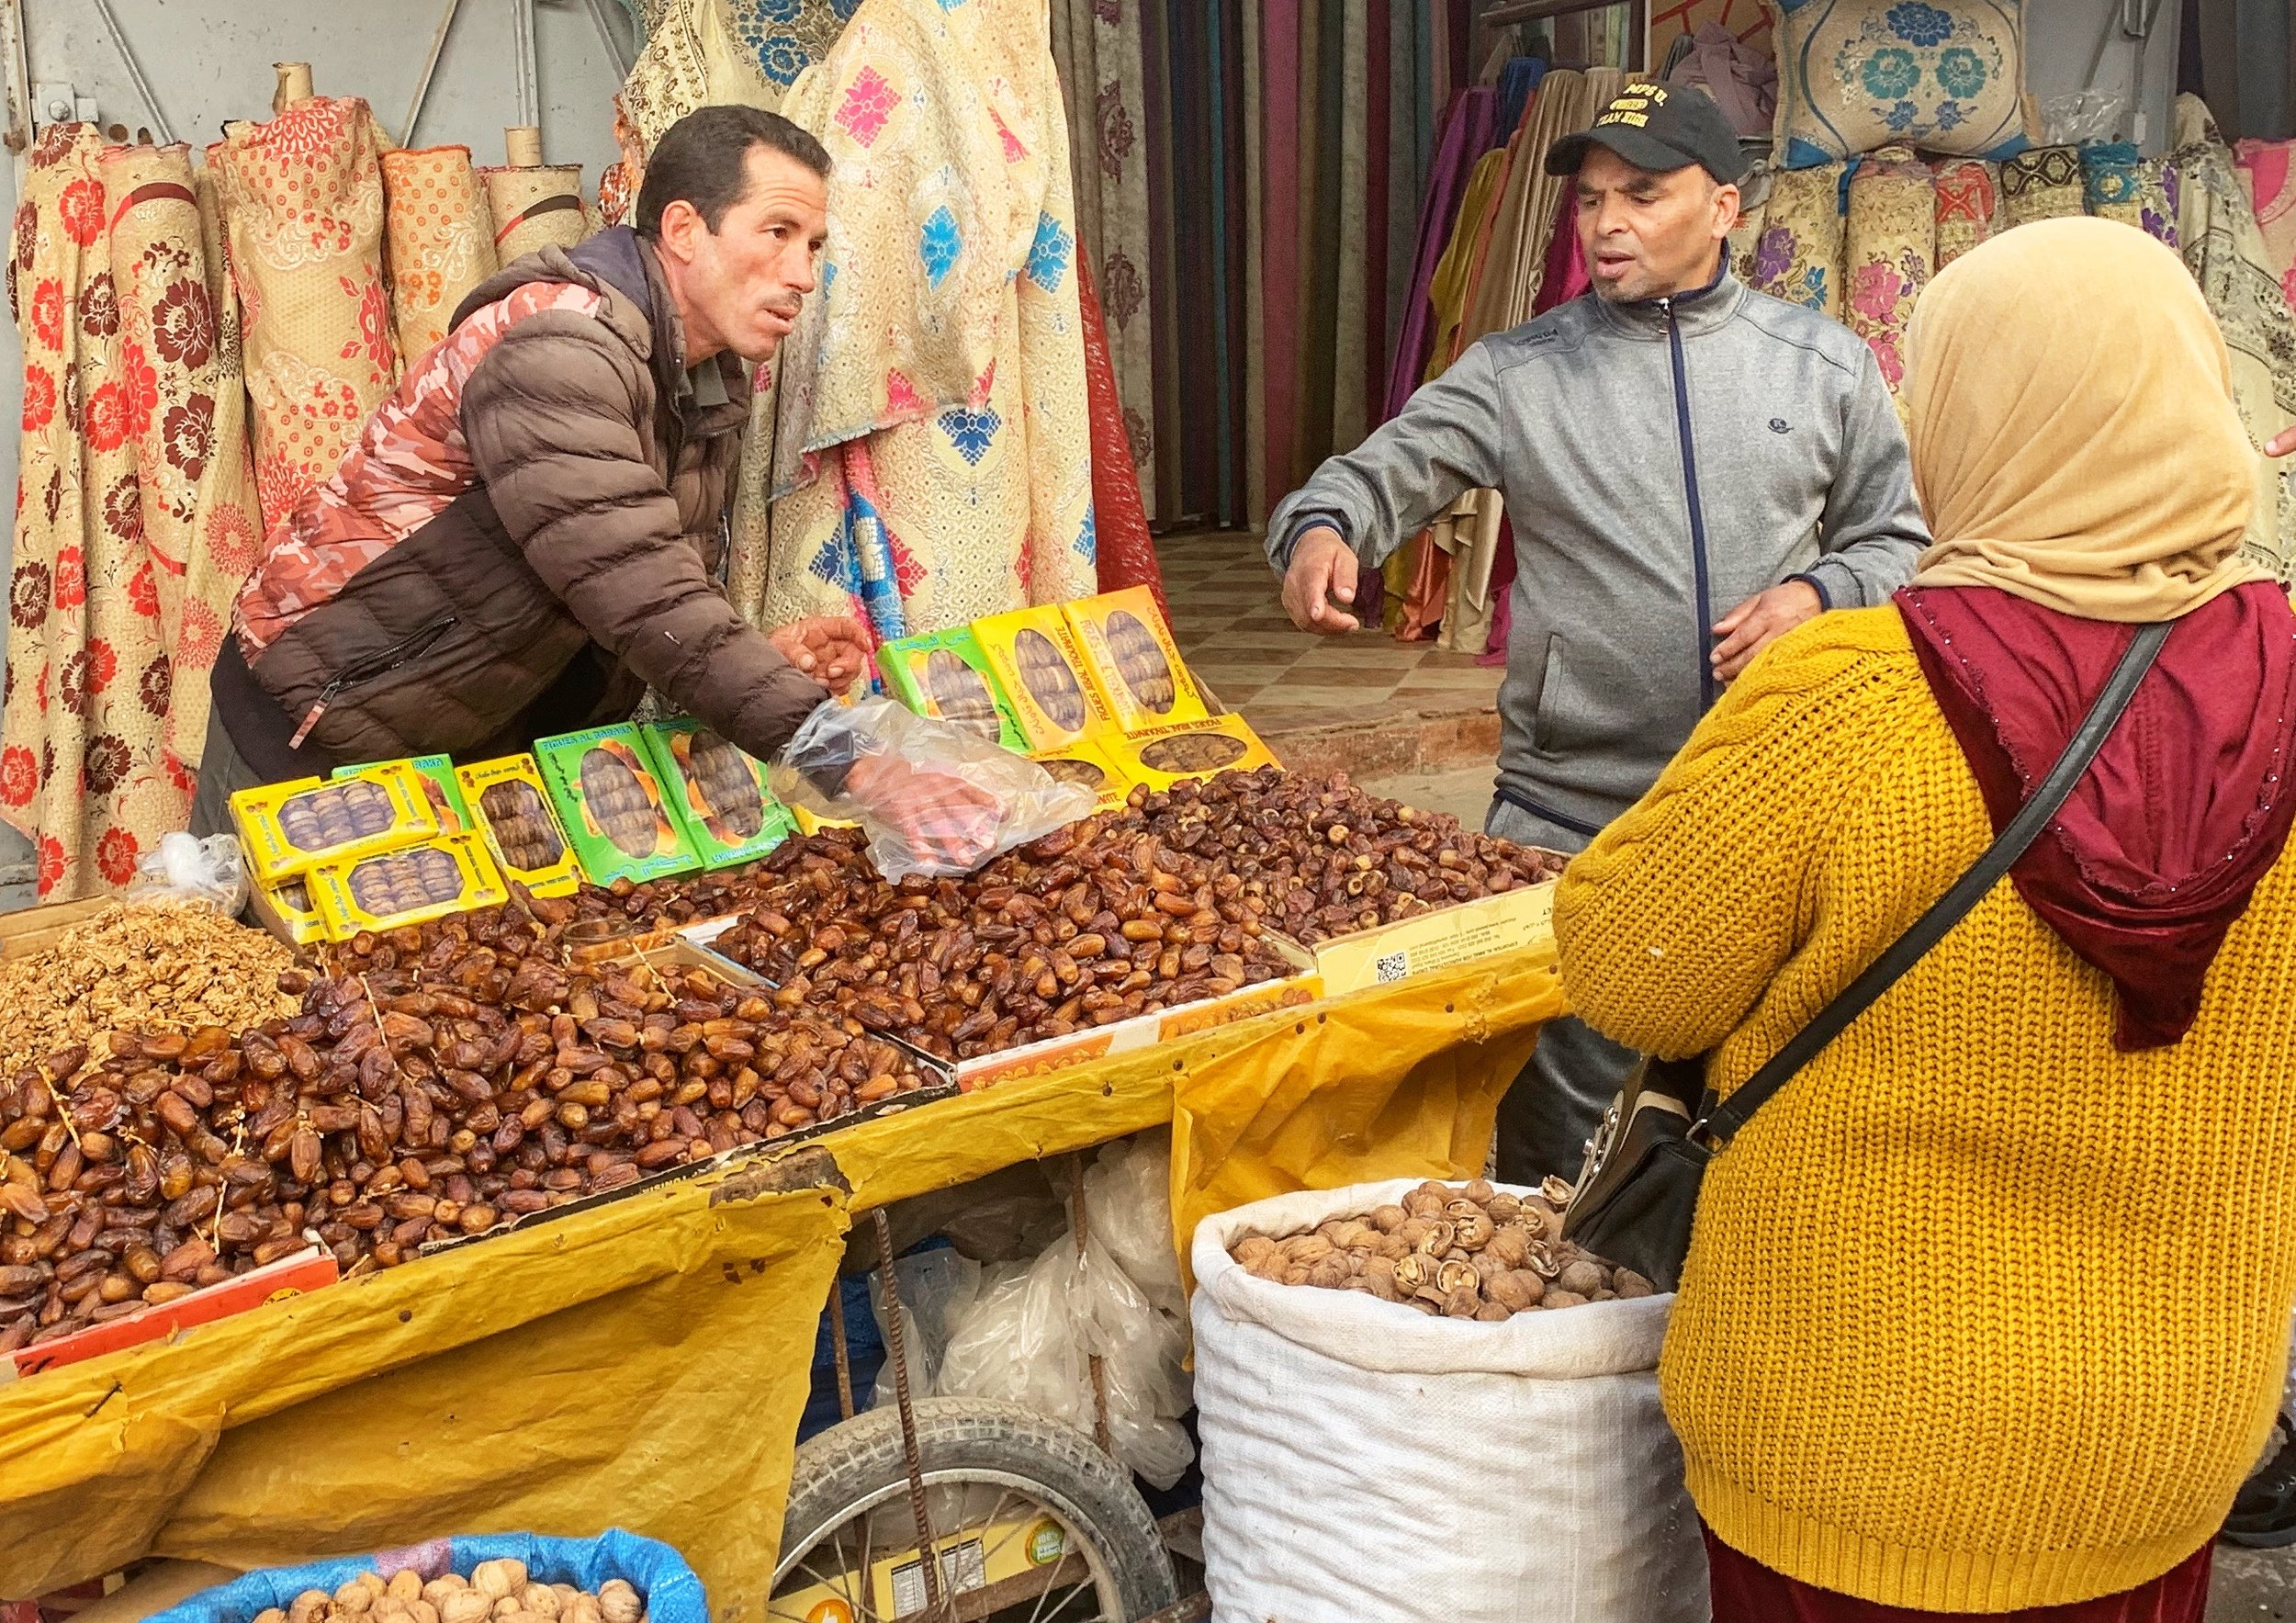 Merchant selling dates in downtown Medina, Rabat